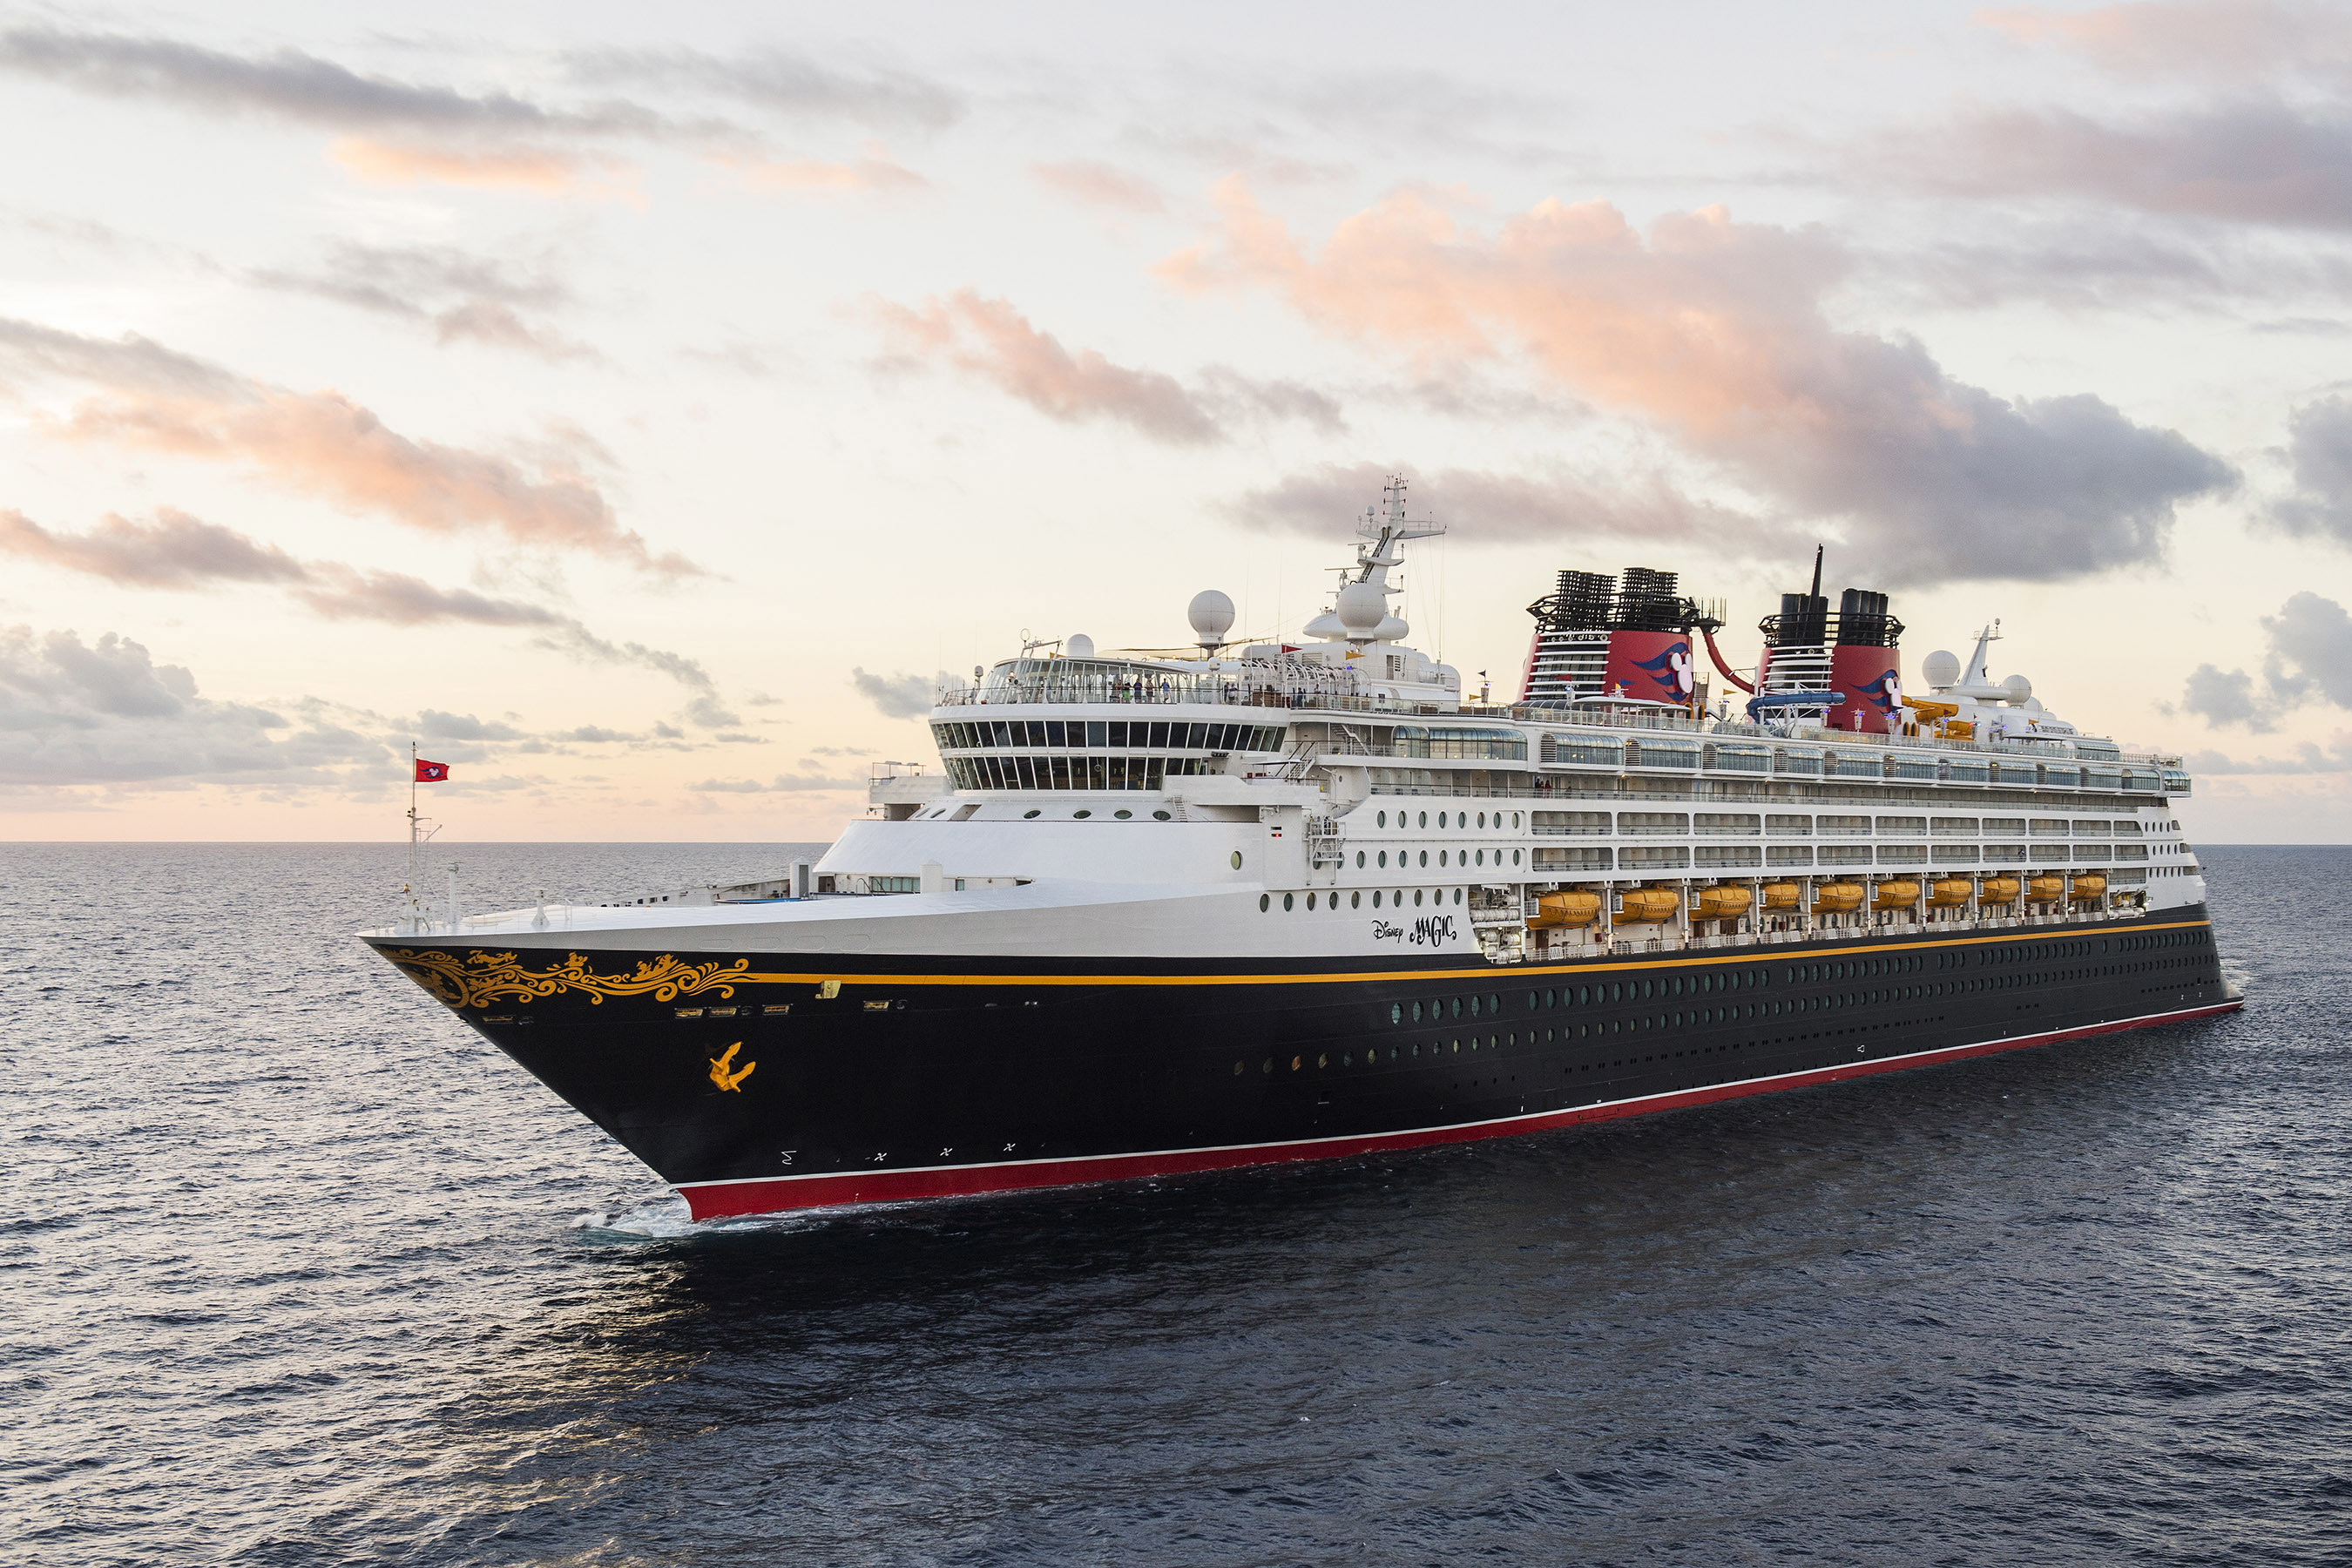 The Disney Magic embodies the Disney Cruise Line tradition of blending the elegant grace of early 20th century transatlantic ocean liners with contemporary design to create a stylish and spectacular cruise ship. On the Disney Magic, guests can experience new adventures, explore re-imagined areas and discover exciting additions for the whole family. (Matt Stroshane, photographer)